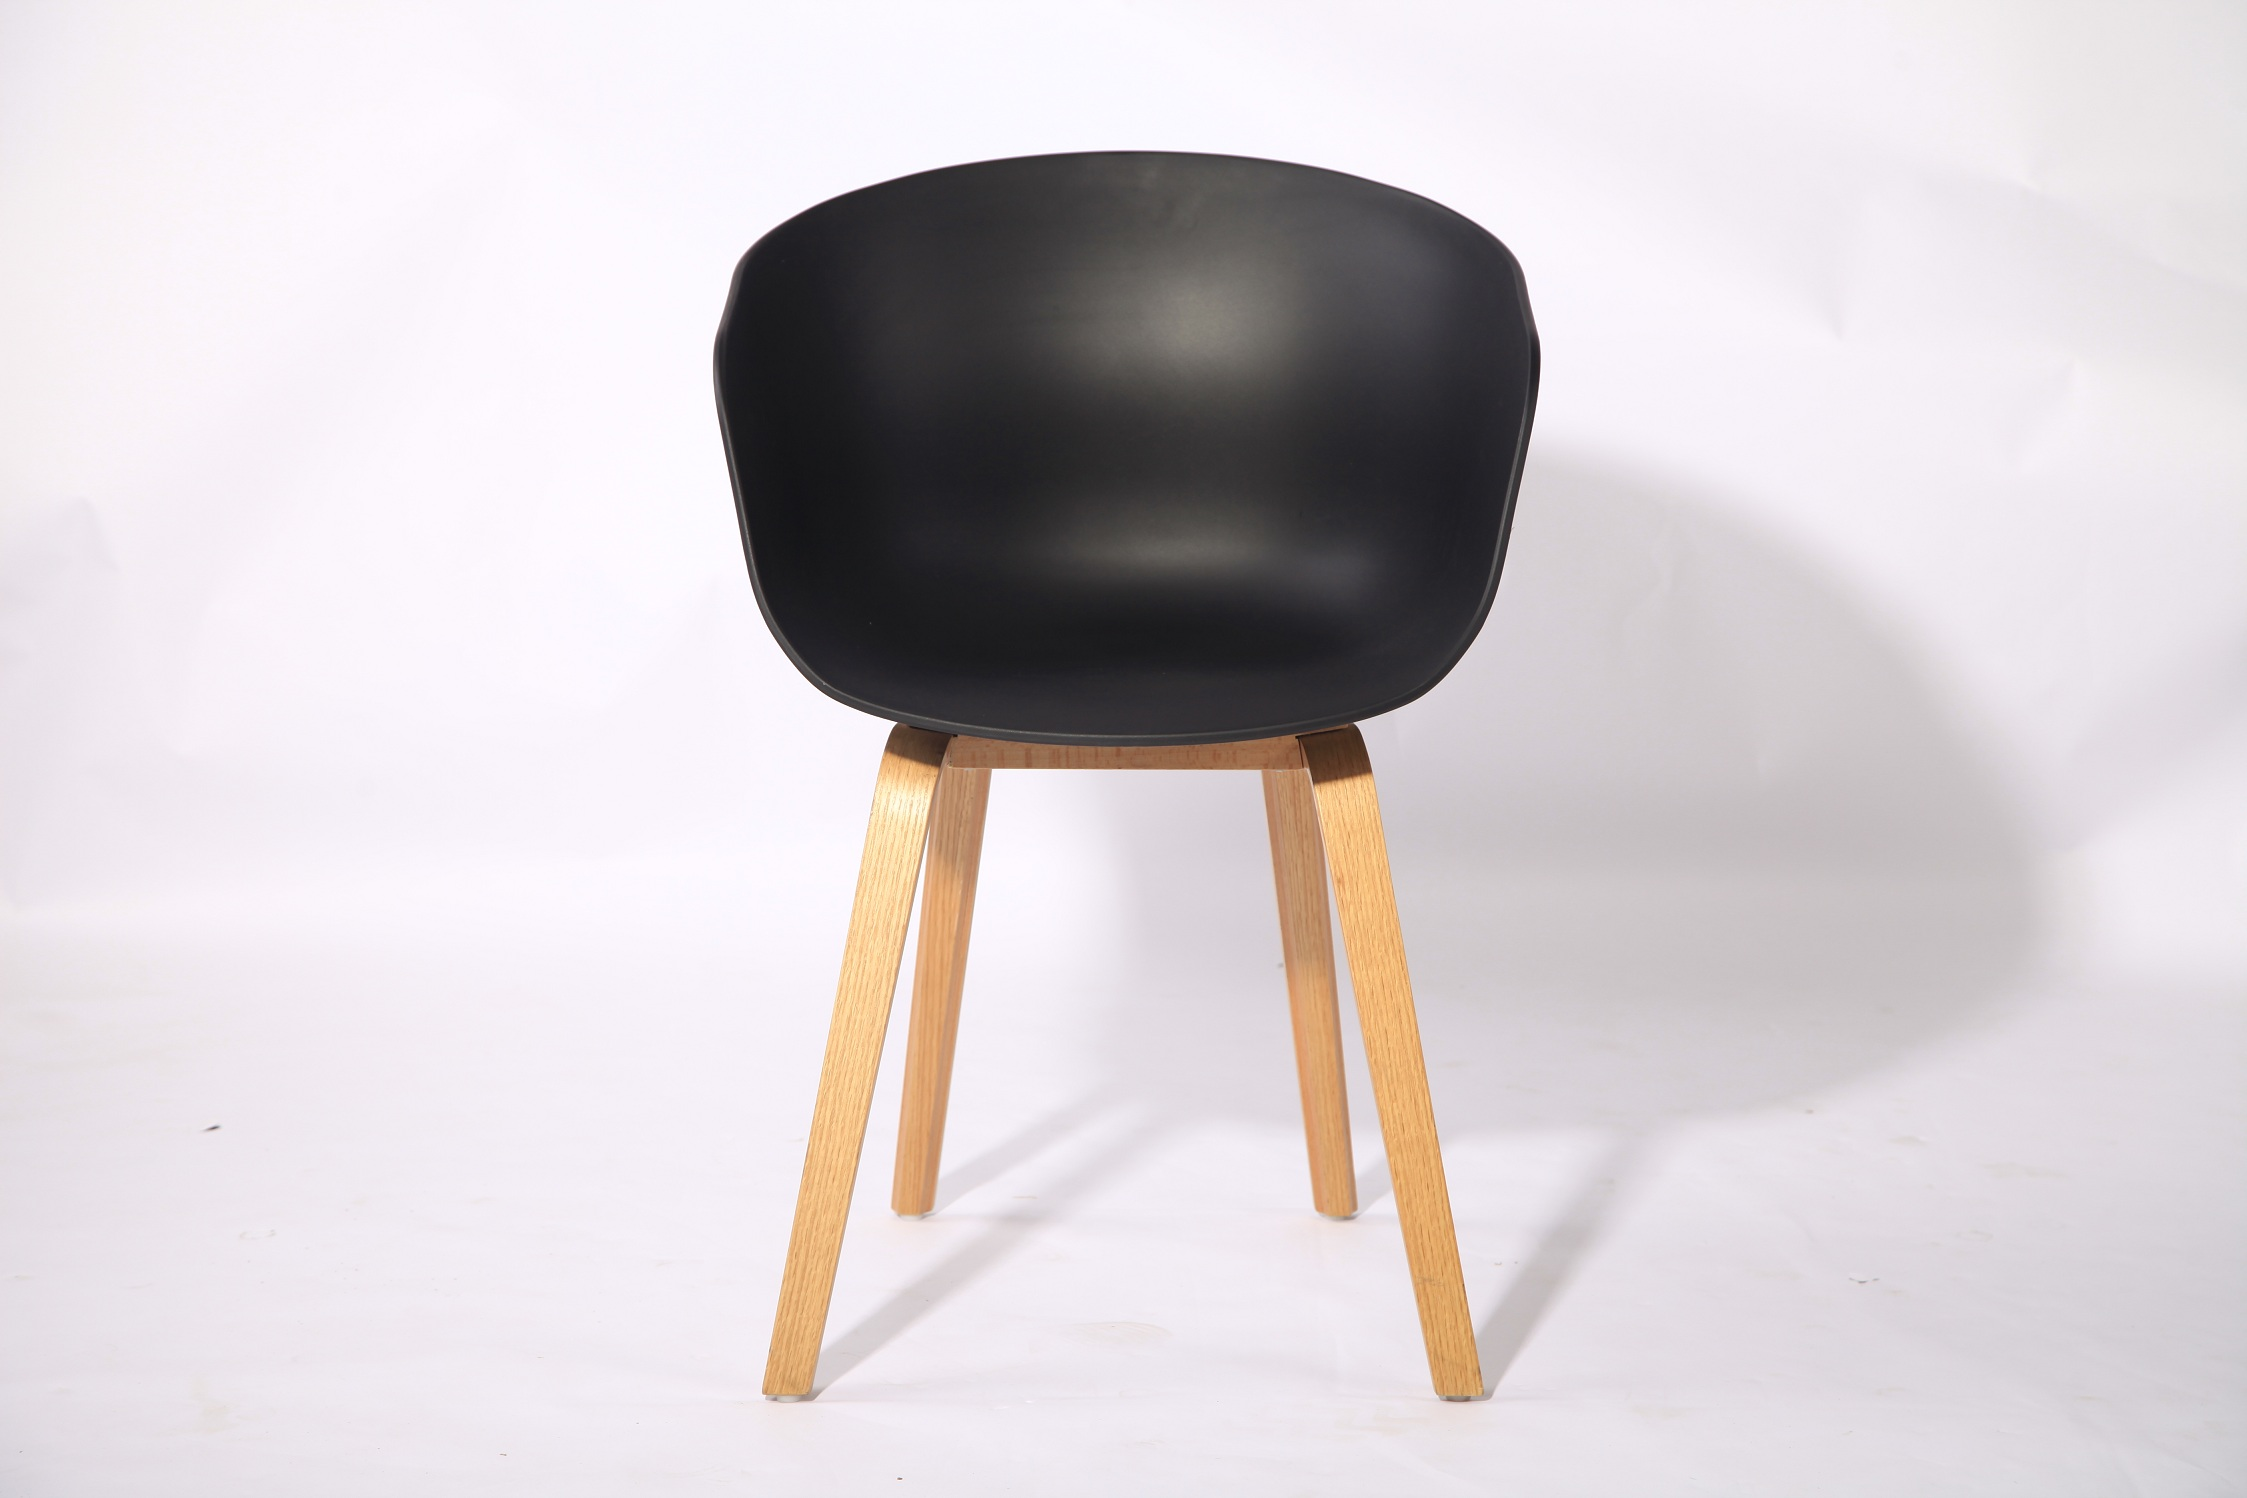 Modern wooden leg dining chair